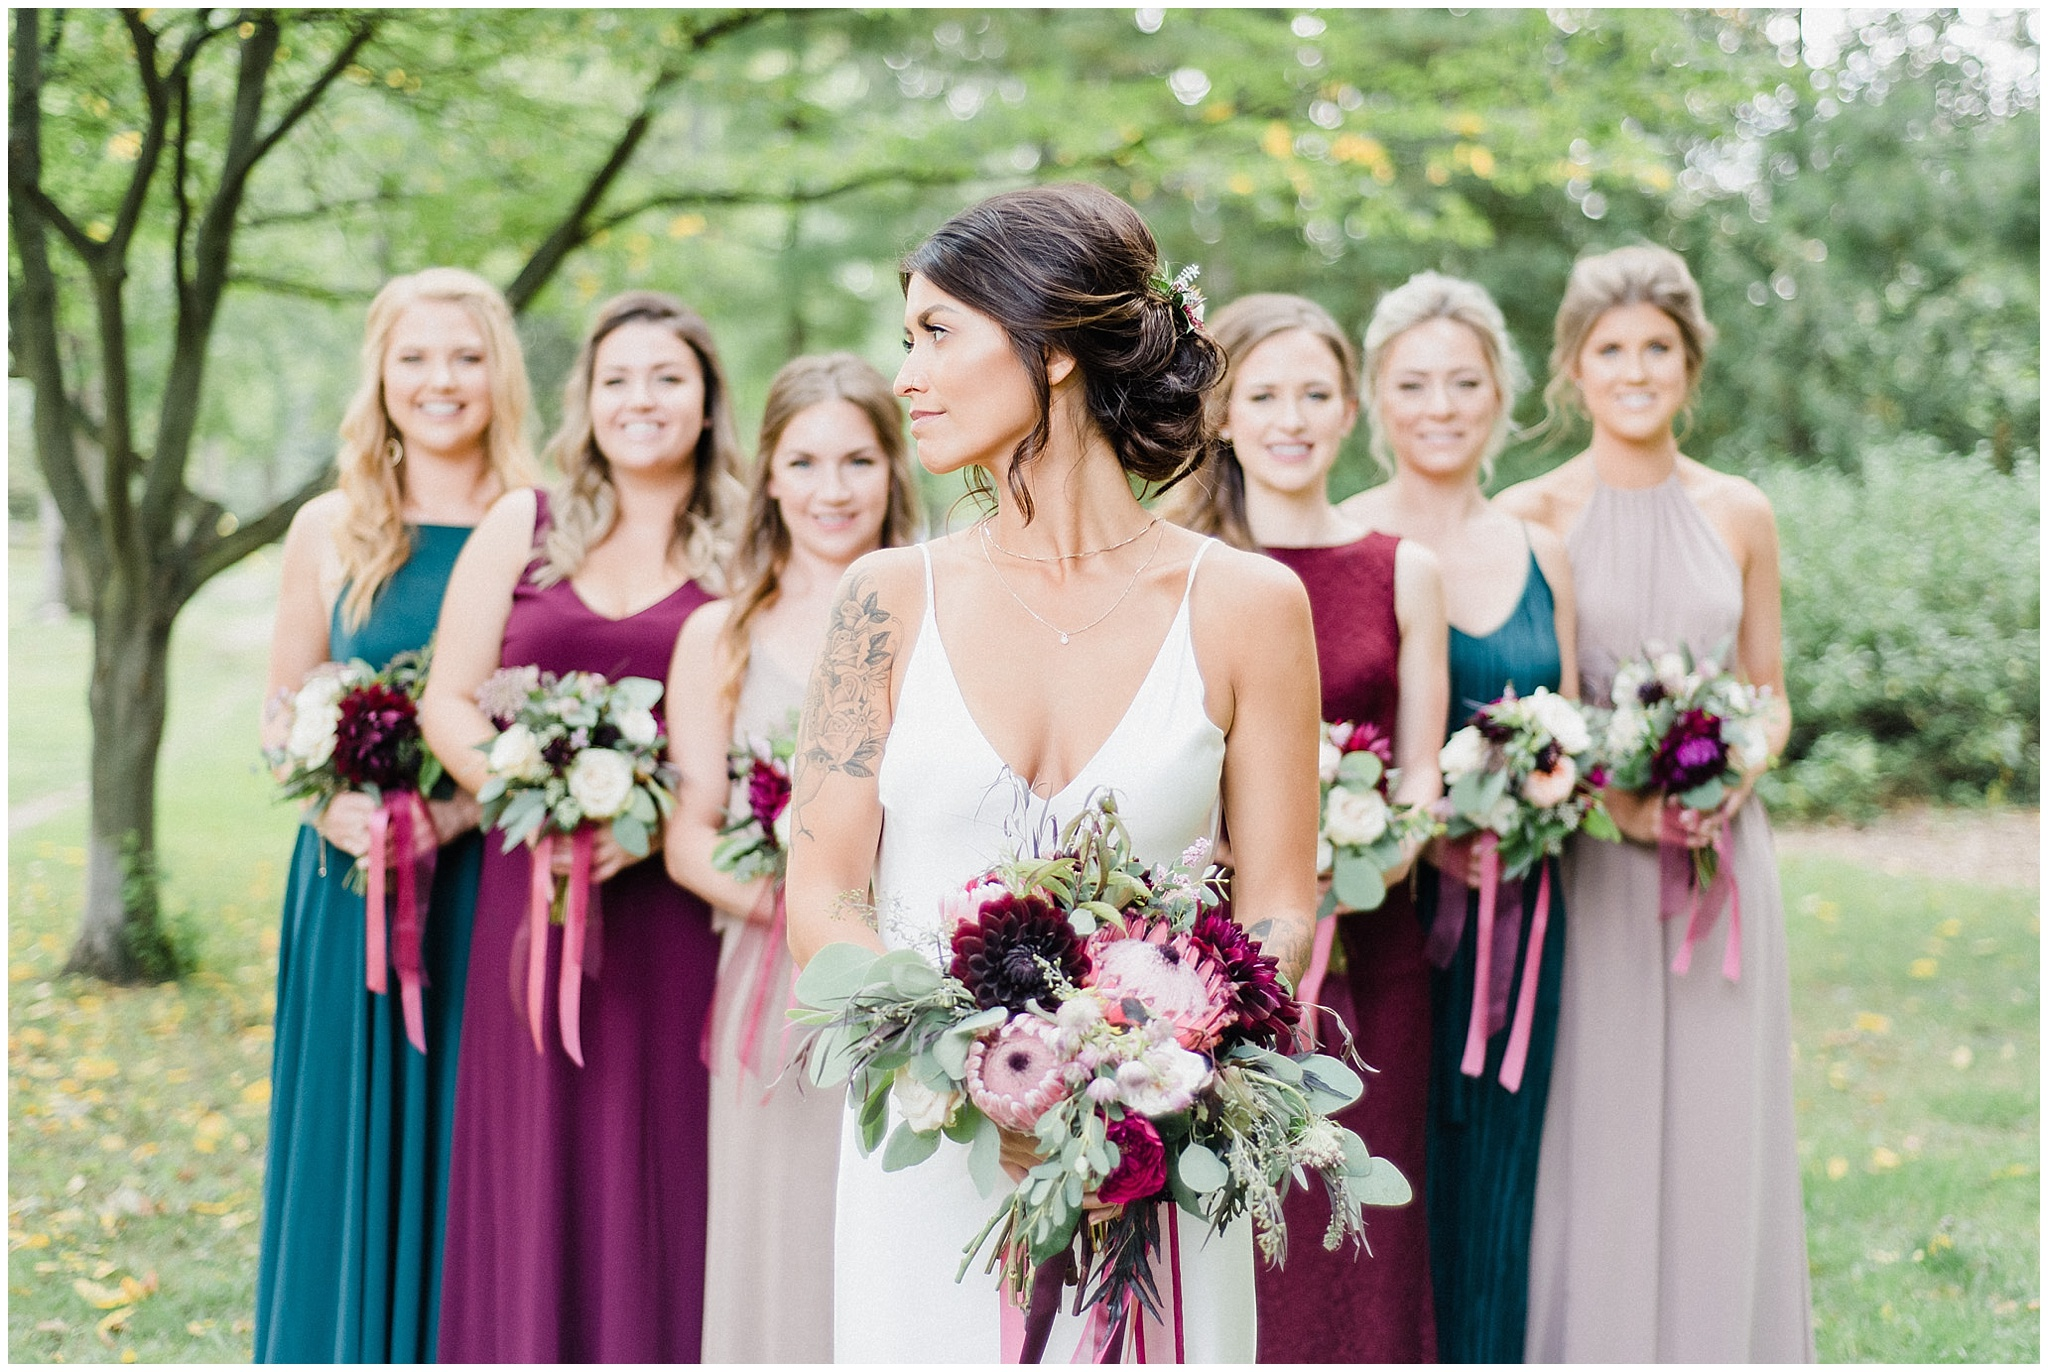 Burgundy, forest green and taupe bridesmaids | Victoria Park Pavilion photographed by Jenn Kavanagh Photography